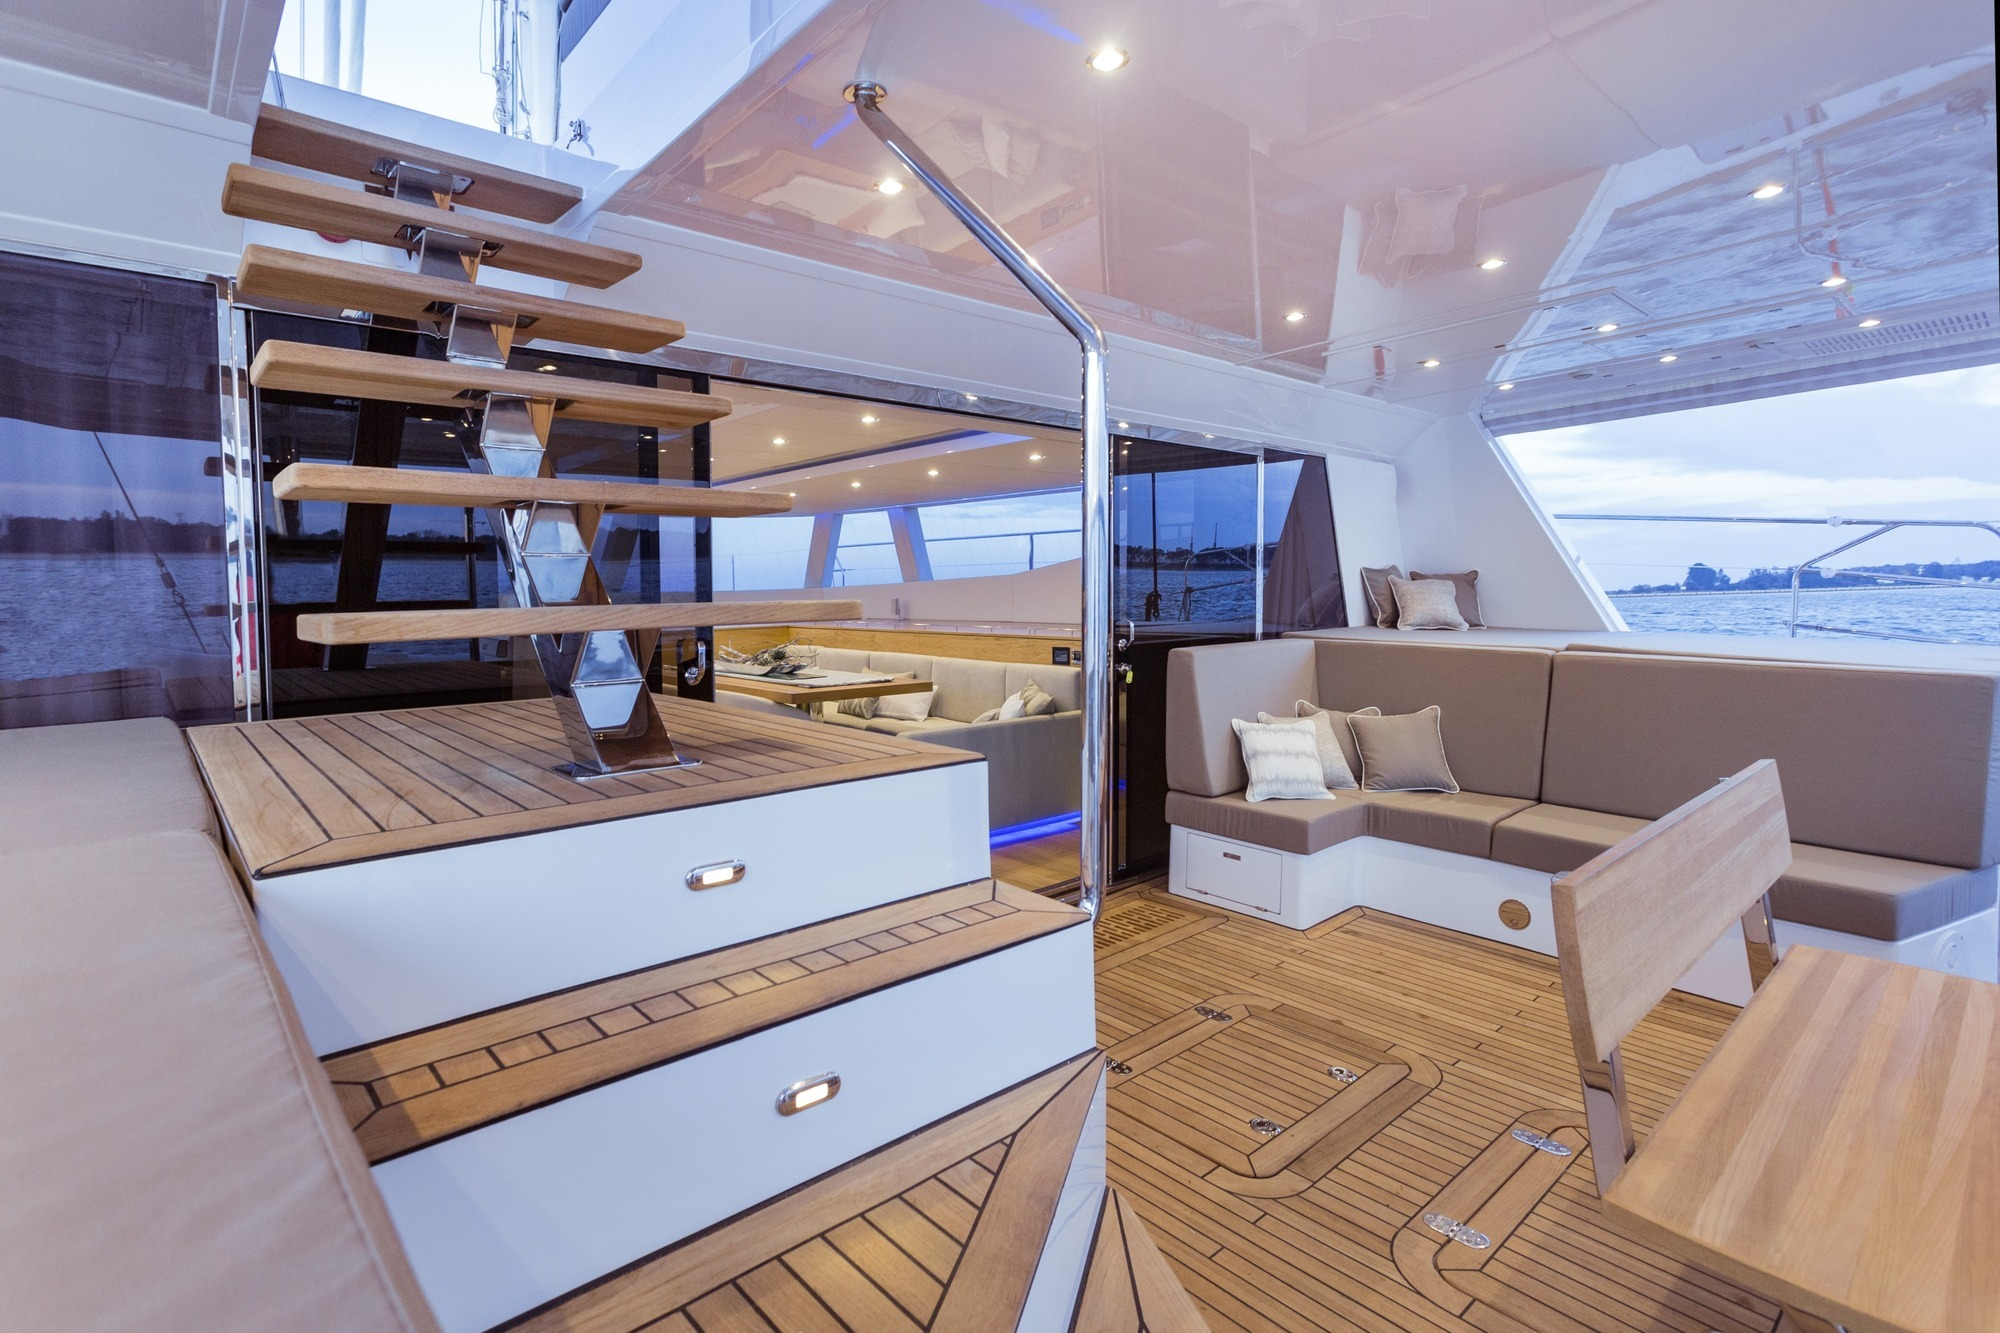 Aft Deck With Access To Upper Deck